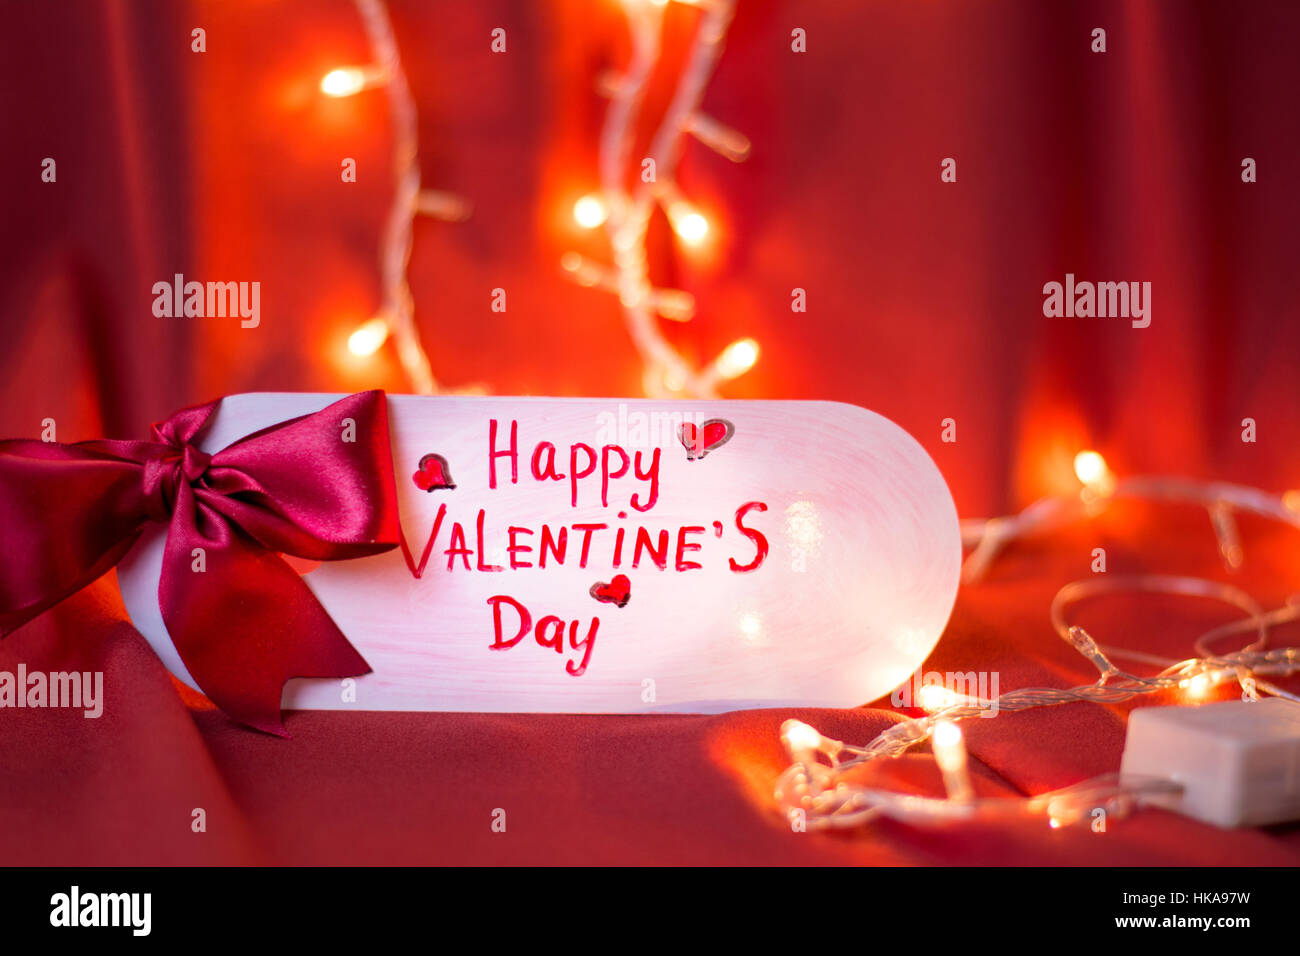 Happy Valentines Day Card With Festive Lights Shining Stock Photo